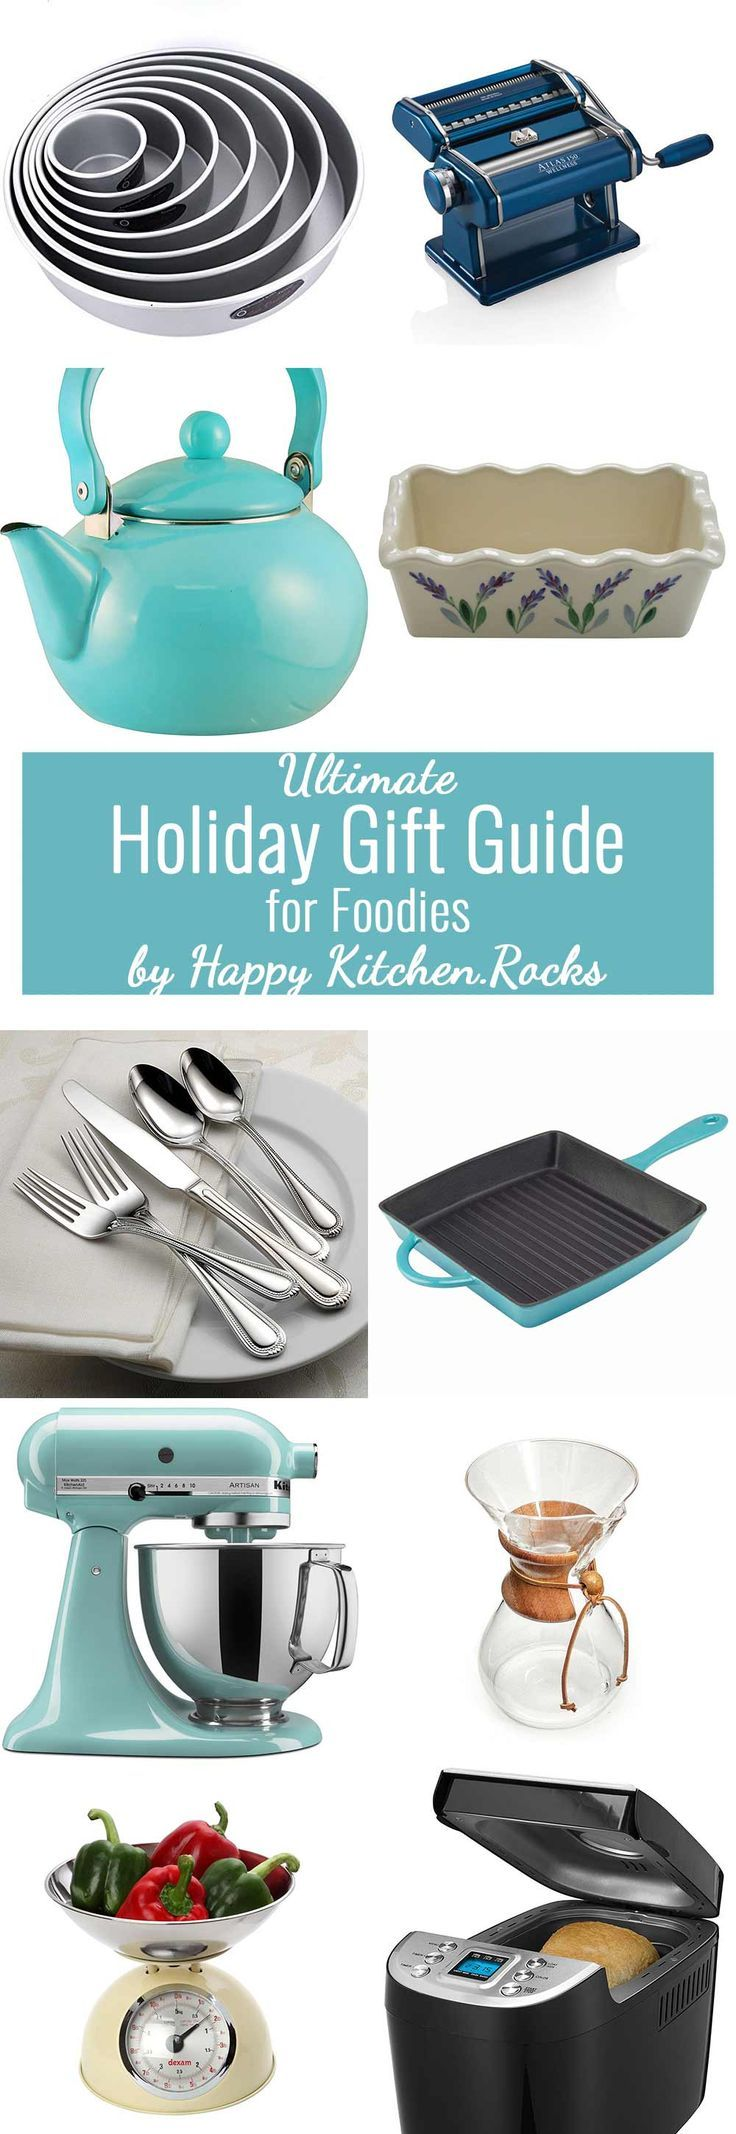 Ultimate Holiday Gift Guide for Foodies includes more than 46 items ...